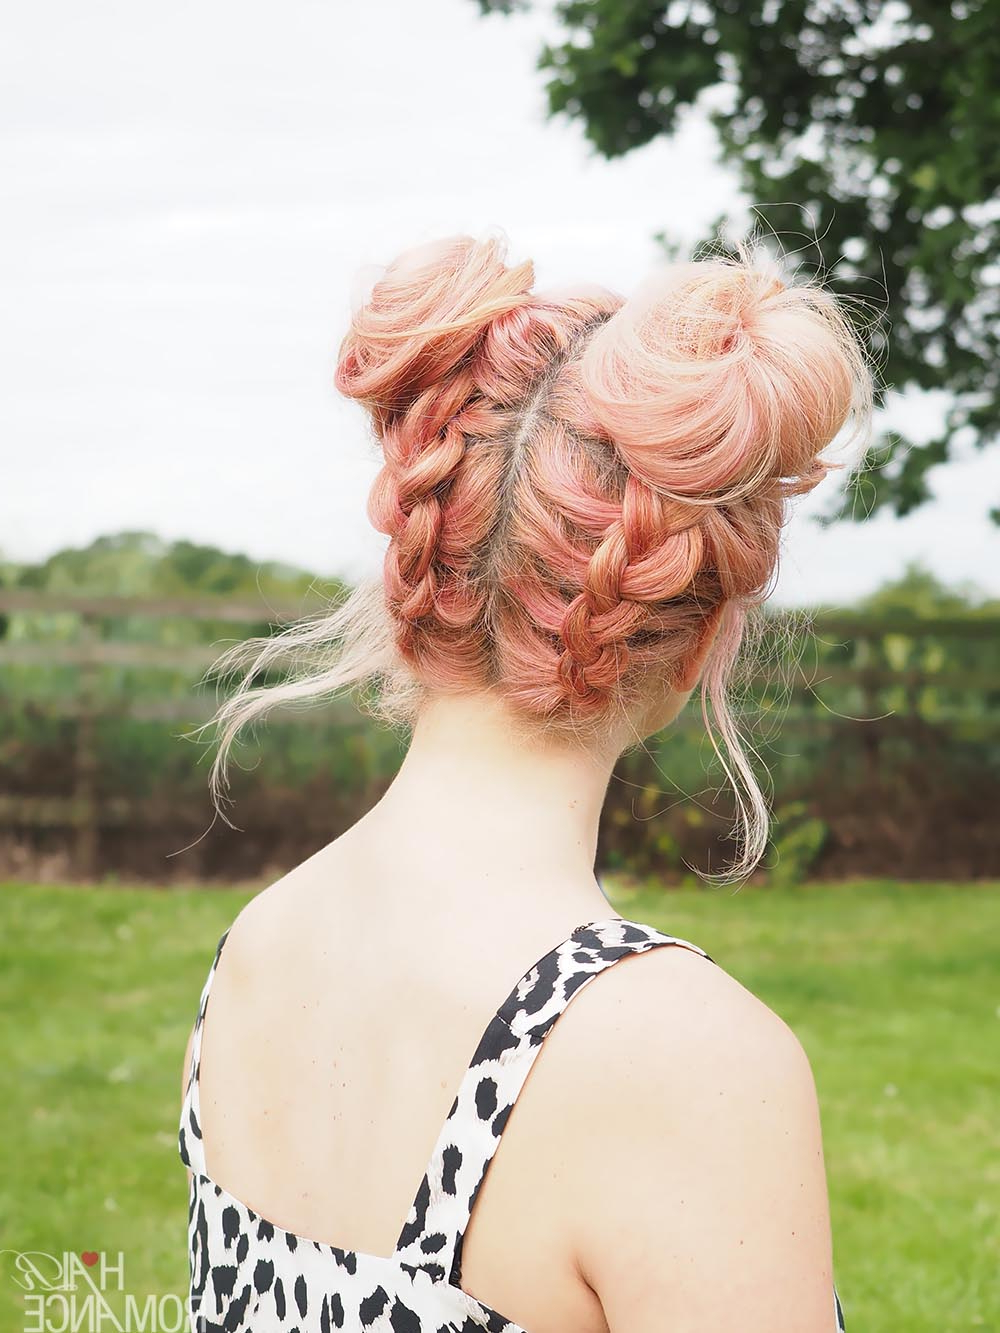 Well Liked Braided Space Buns Updo Hairstyles Inside Diy Braided Space Buns Tutorial – Hair Romance (View 19 of 20)